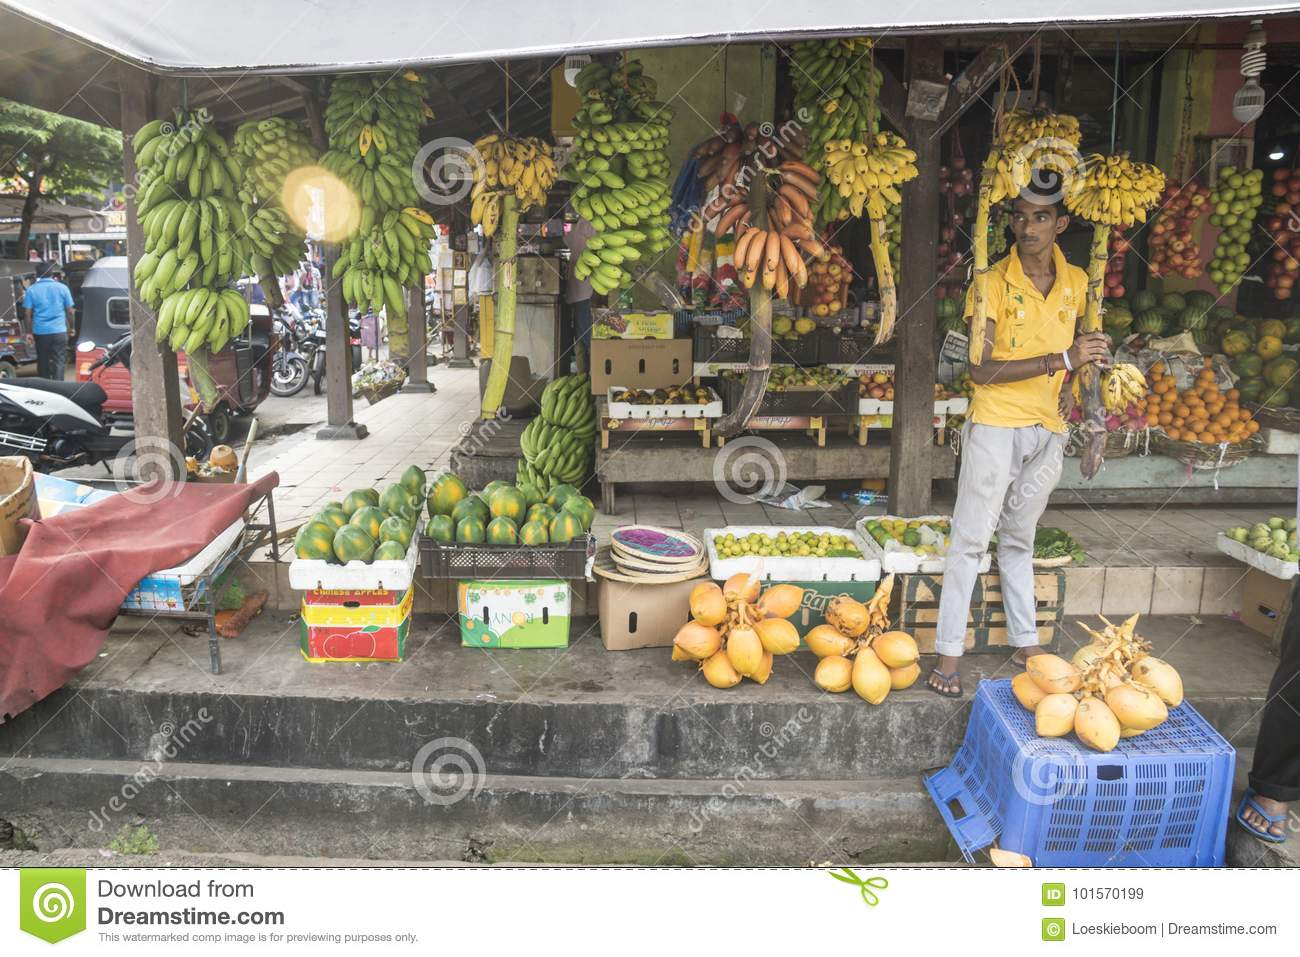 Galle, Sri Lanka - April 11 2017: Market seller standing at a stall with different types of bananas